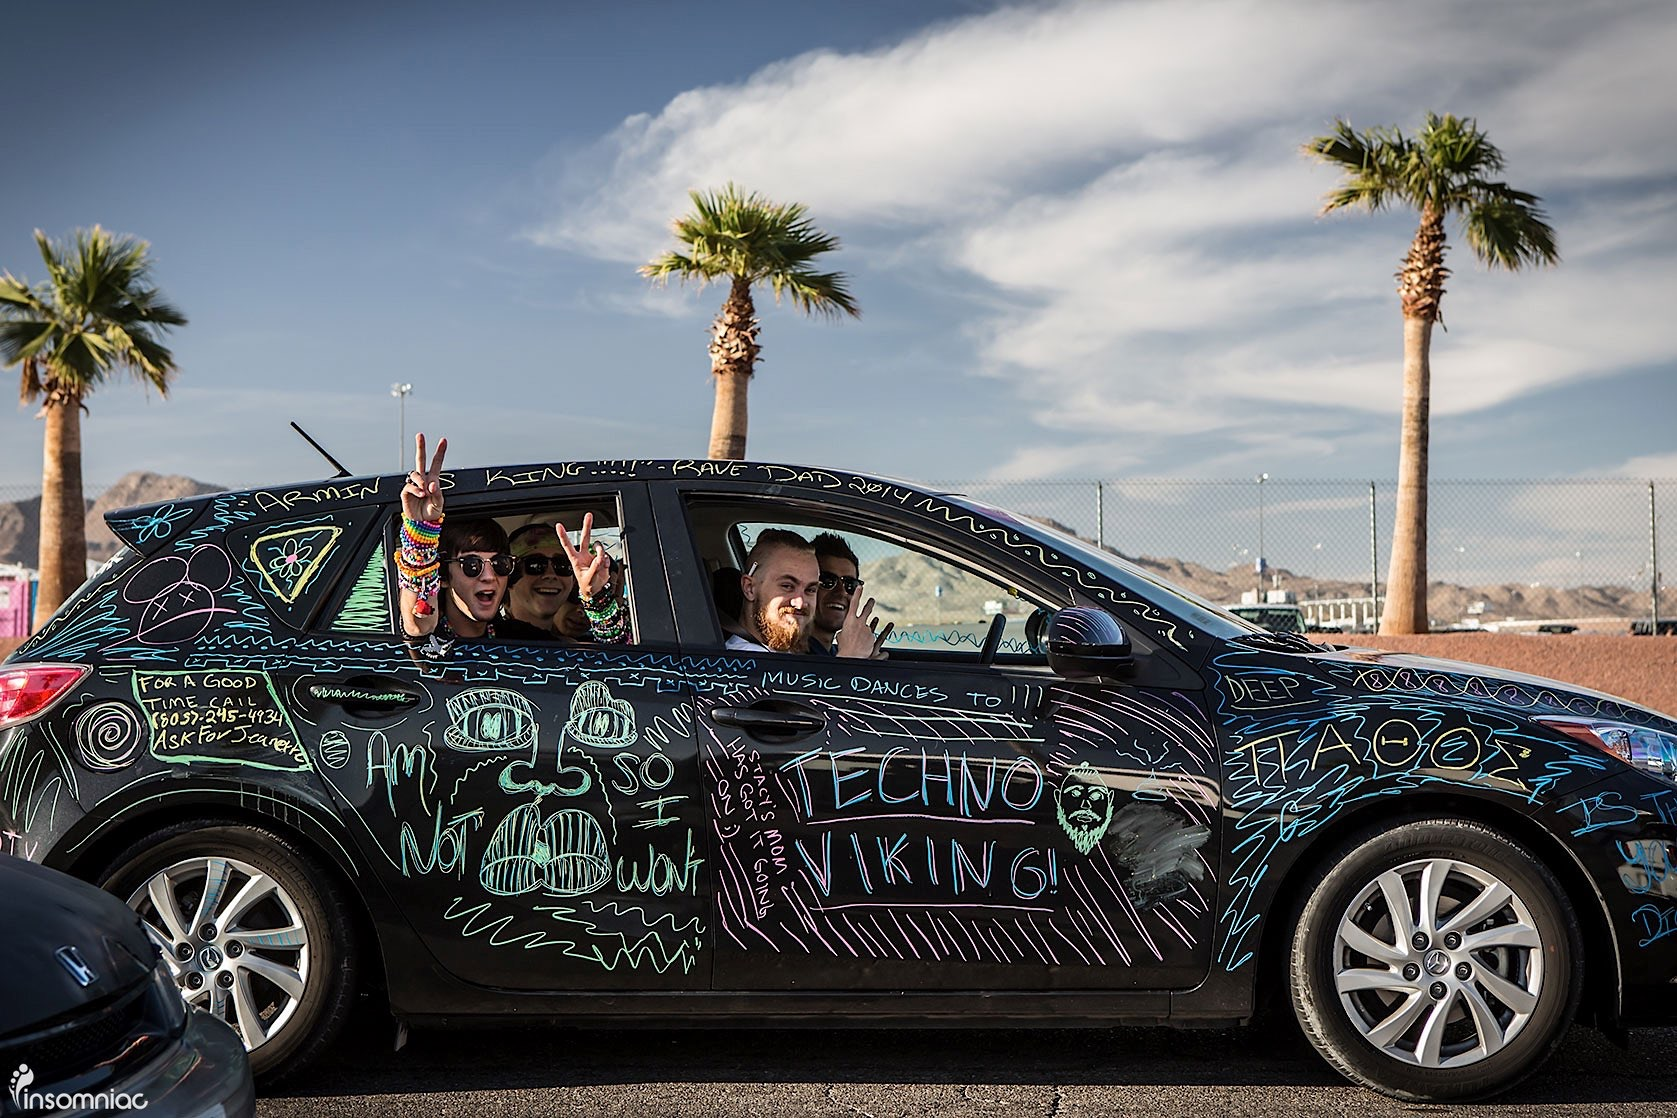 We're hoping this is their own car they decorated. Probably don't do this to a rental. Photo courtesy of Insomniac.